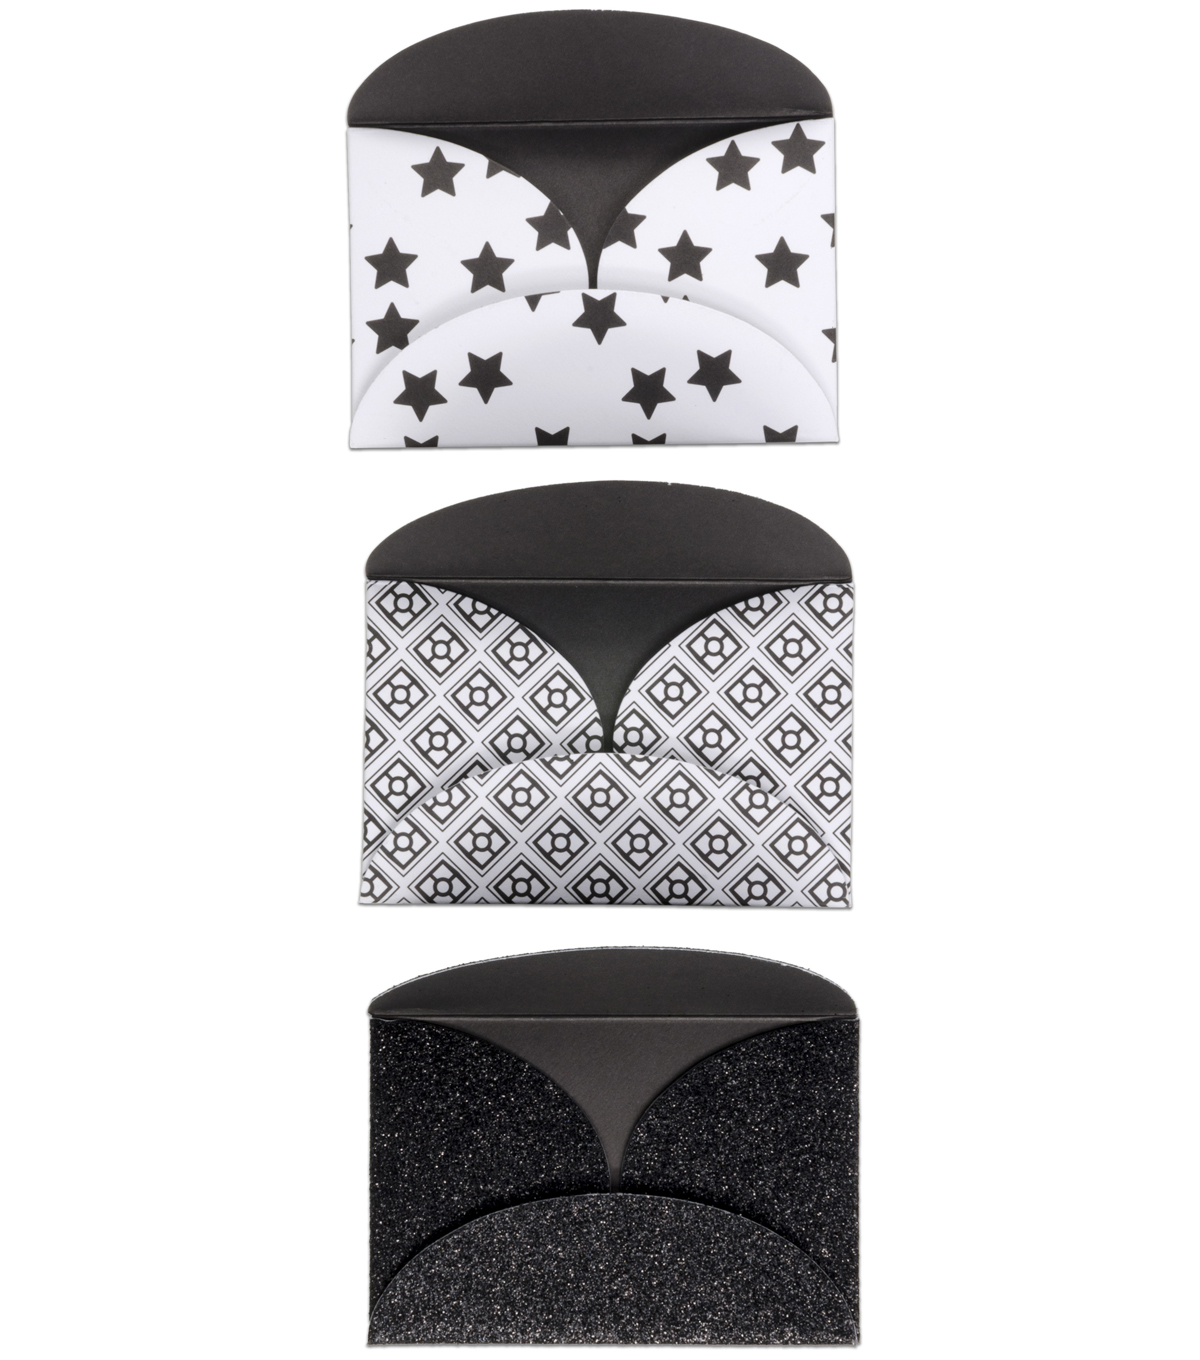 K&Company Black And White Gift Card Holders